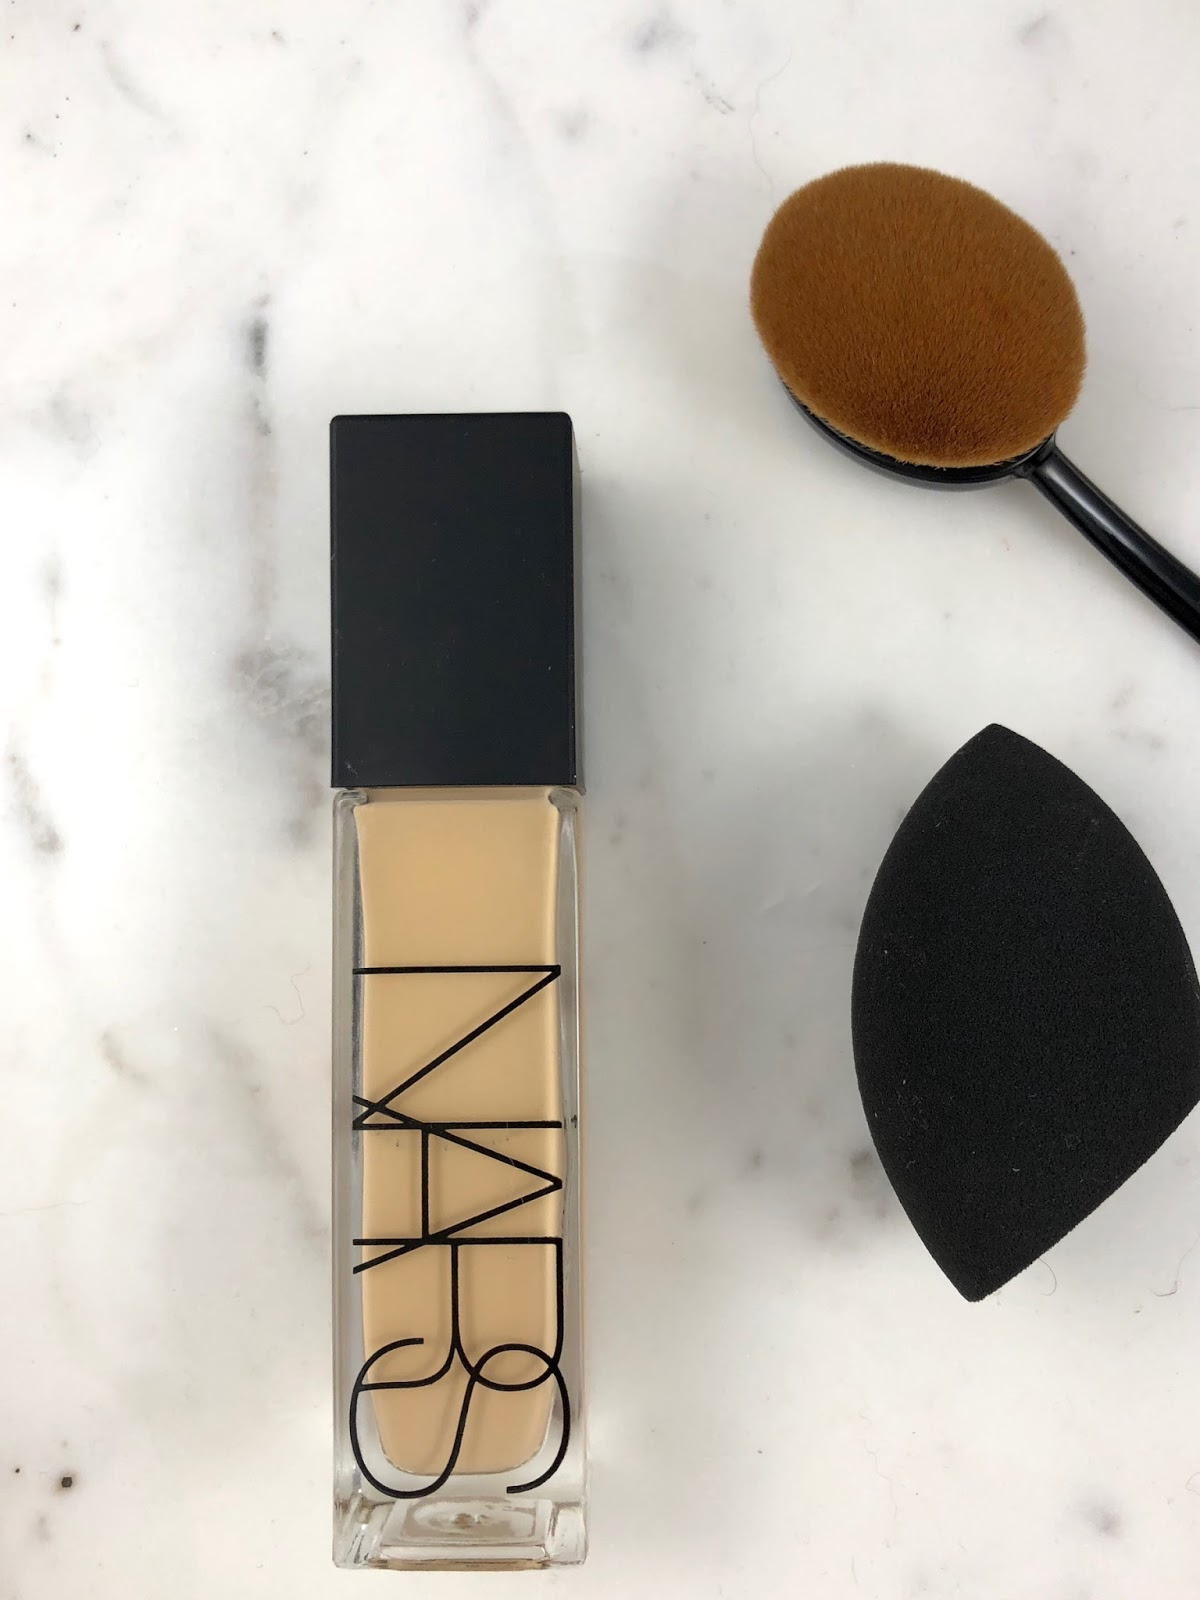 NARS Natural Radiant Longwear Foundation: A quick review